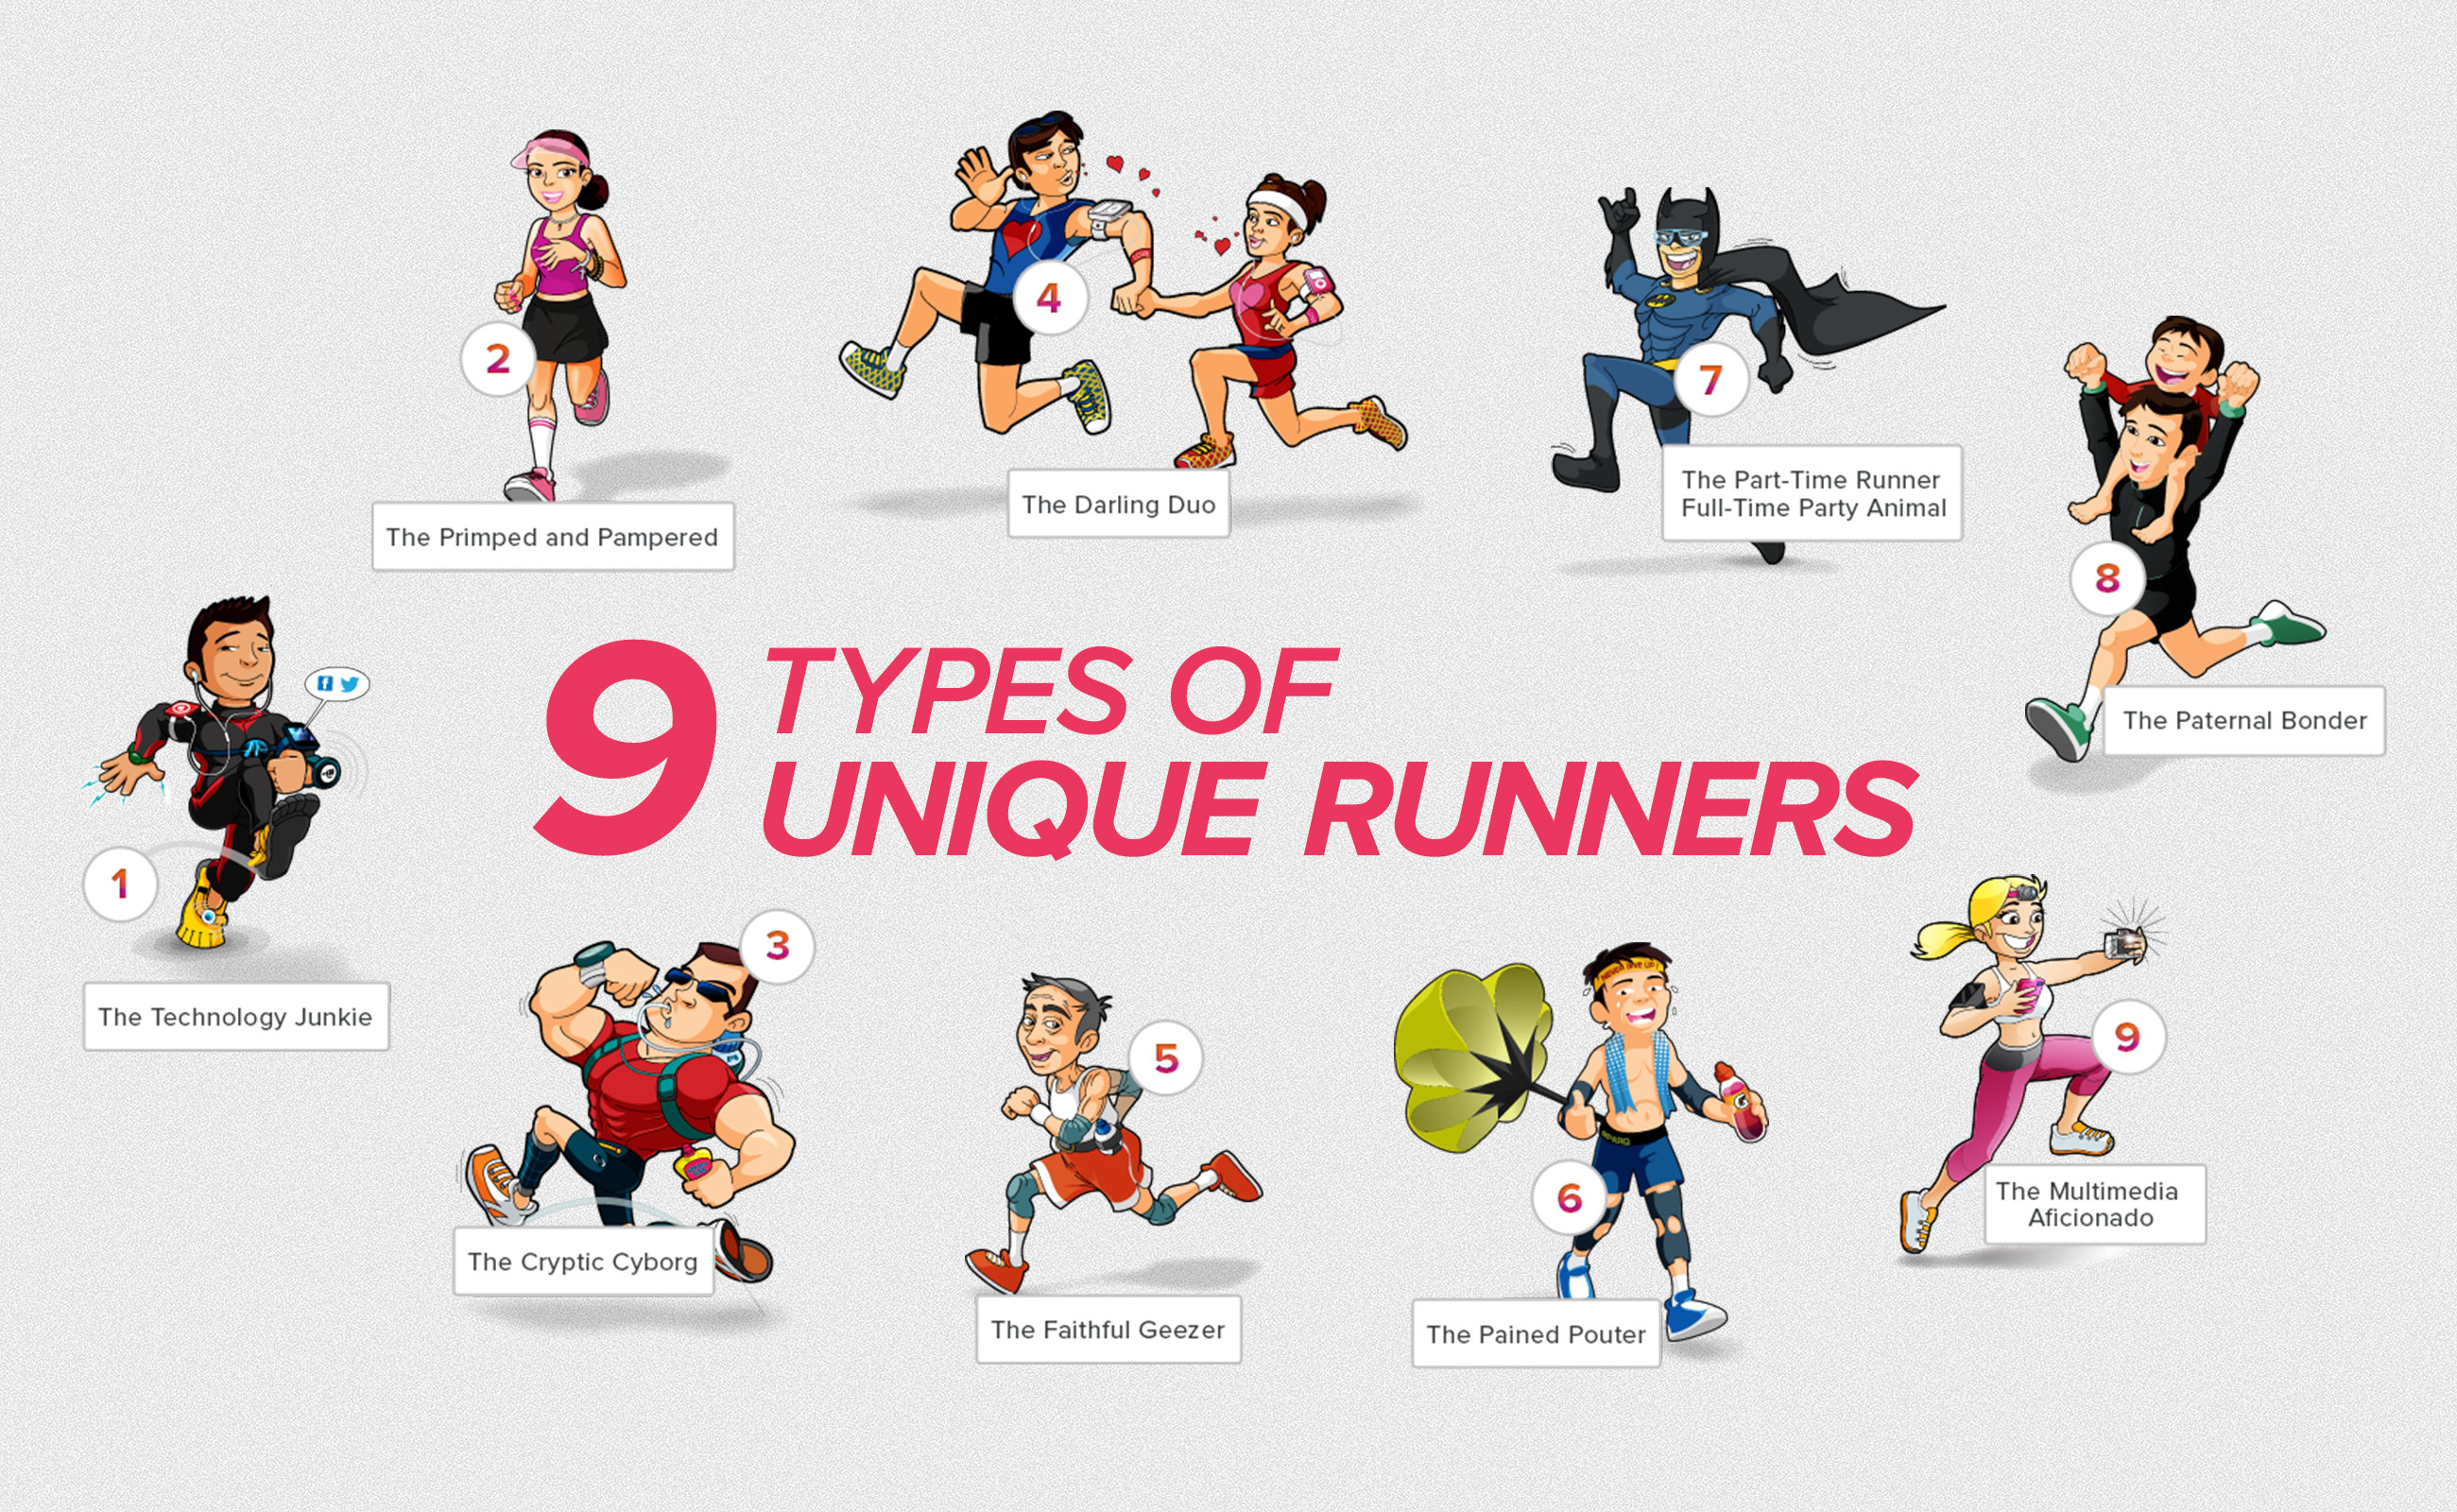 9 Types of Unique Runners